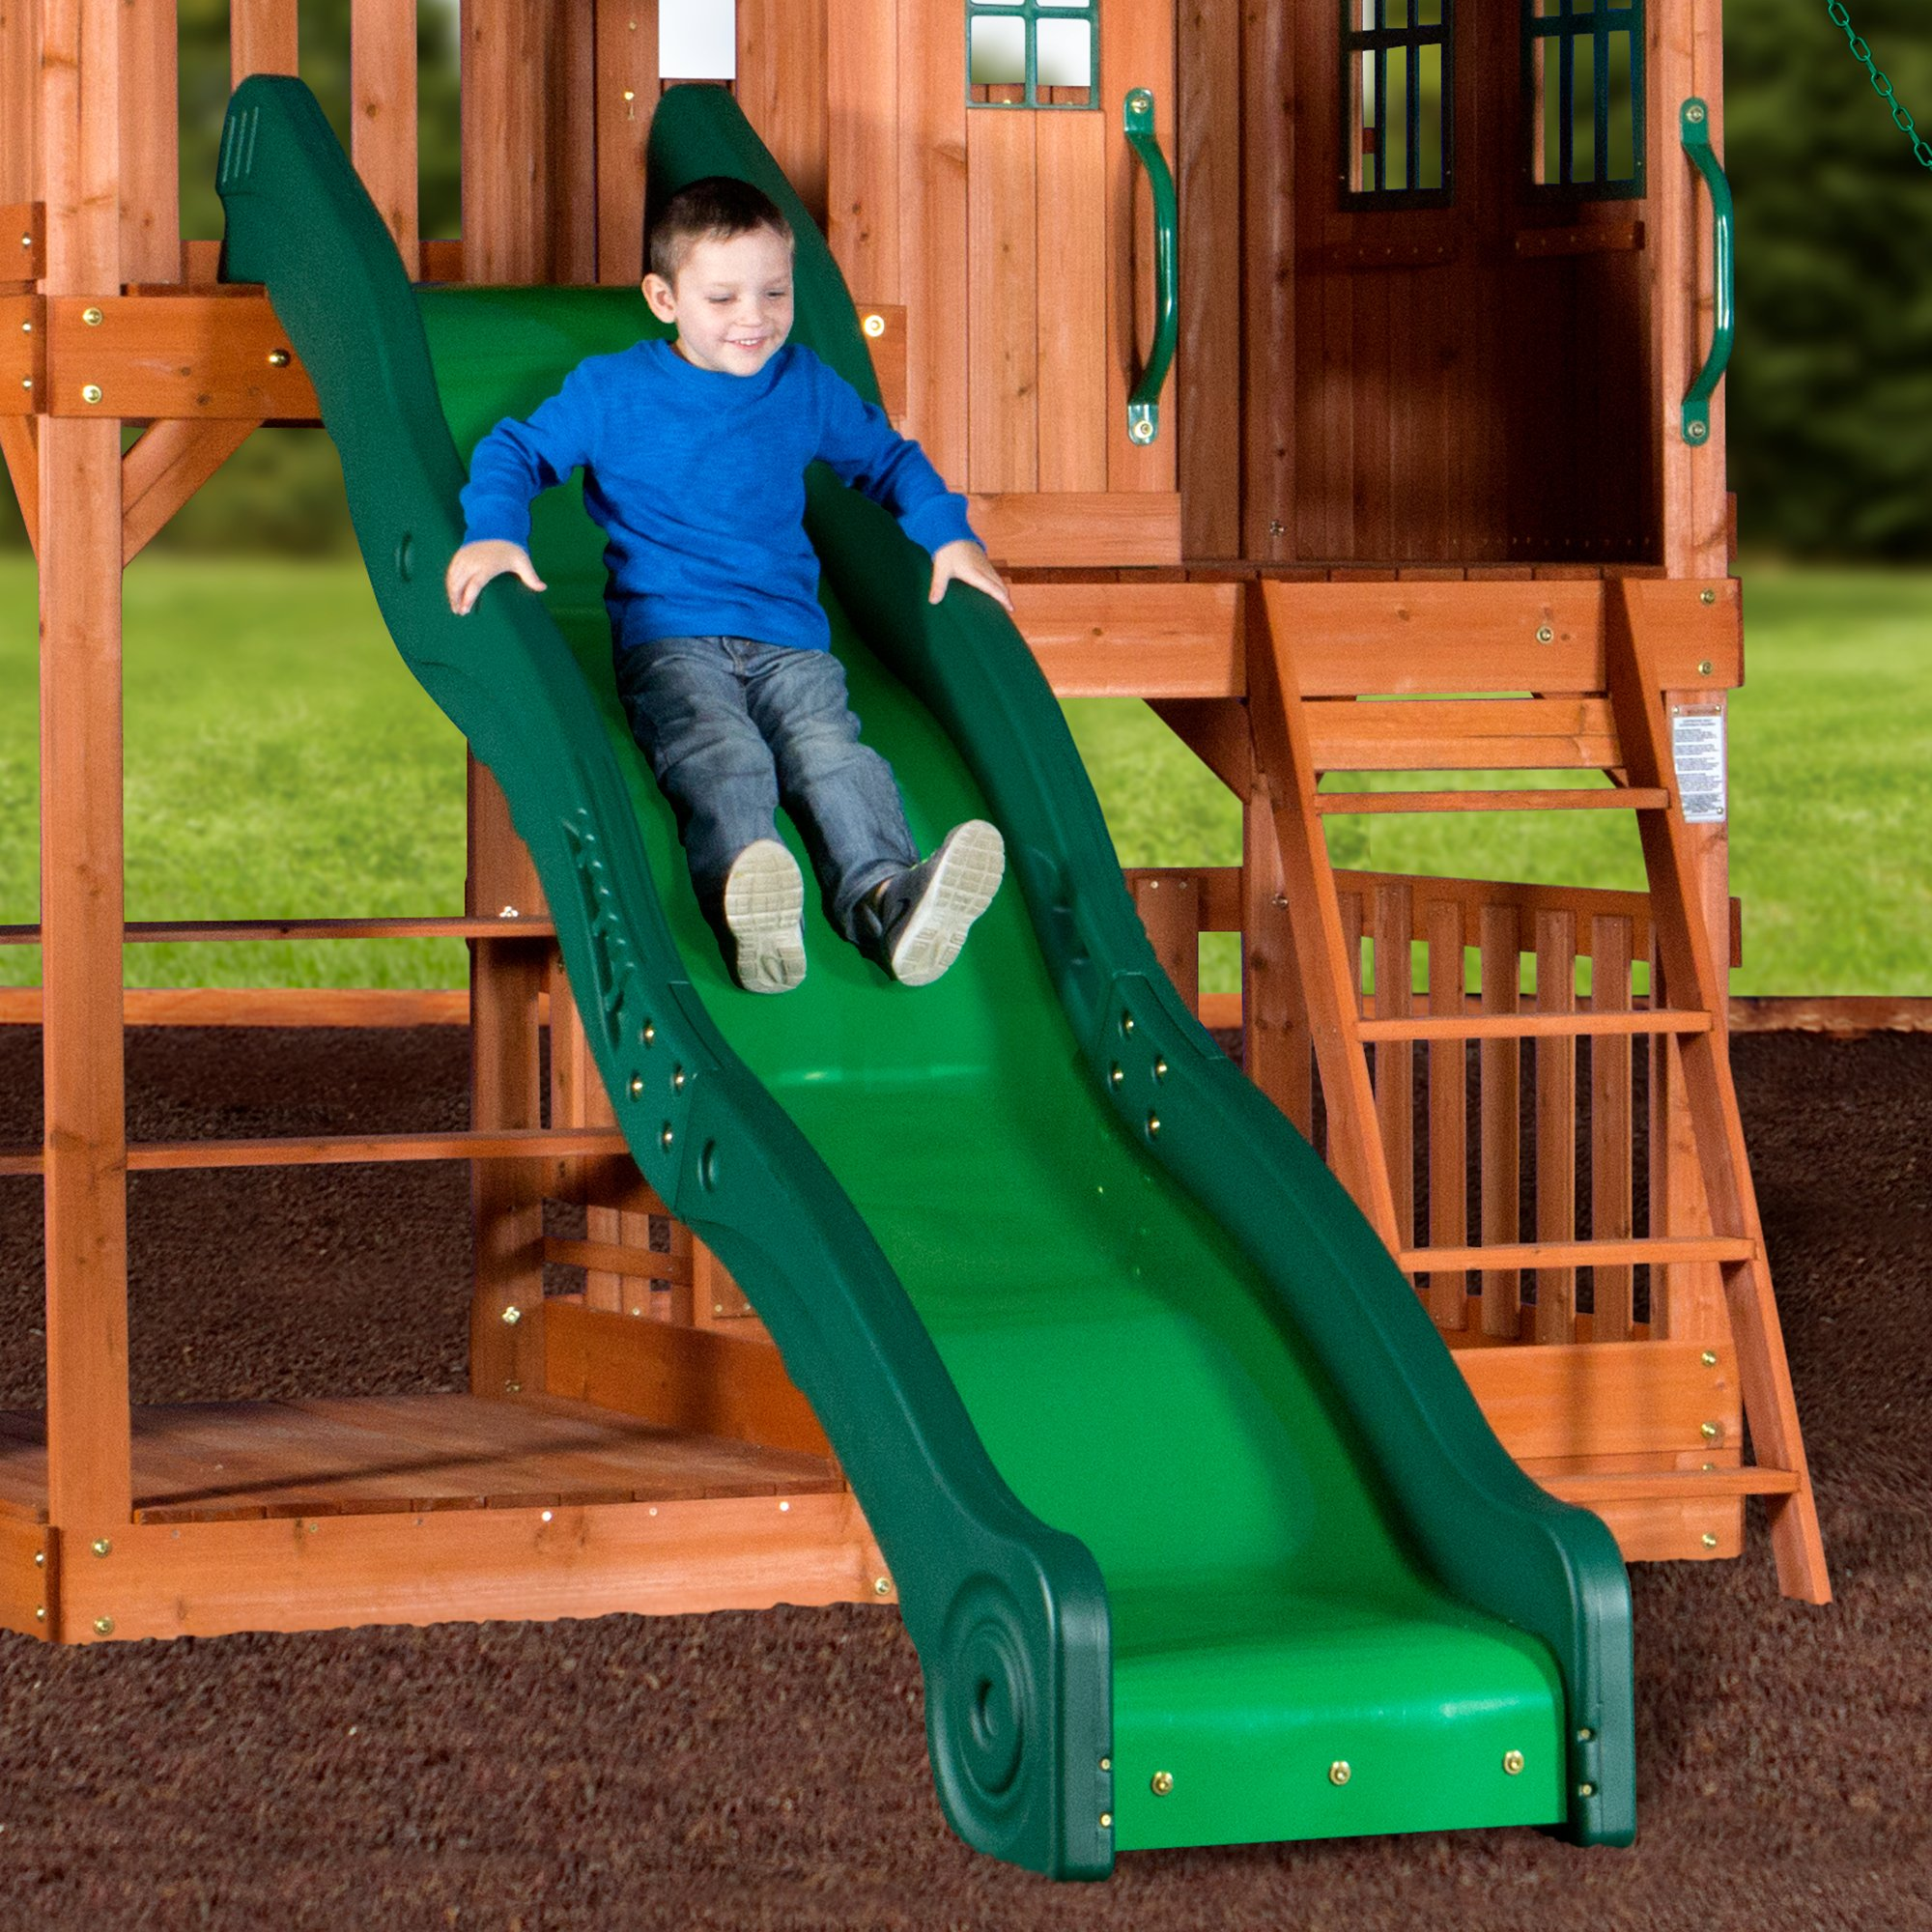 Backyard Discovery Pacific View All Cedar Wood Playset Swing Set by Backyard Discovery (Image #3)